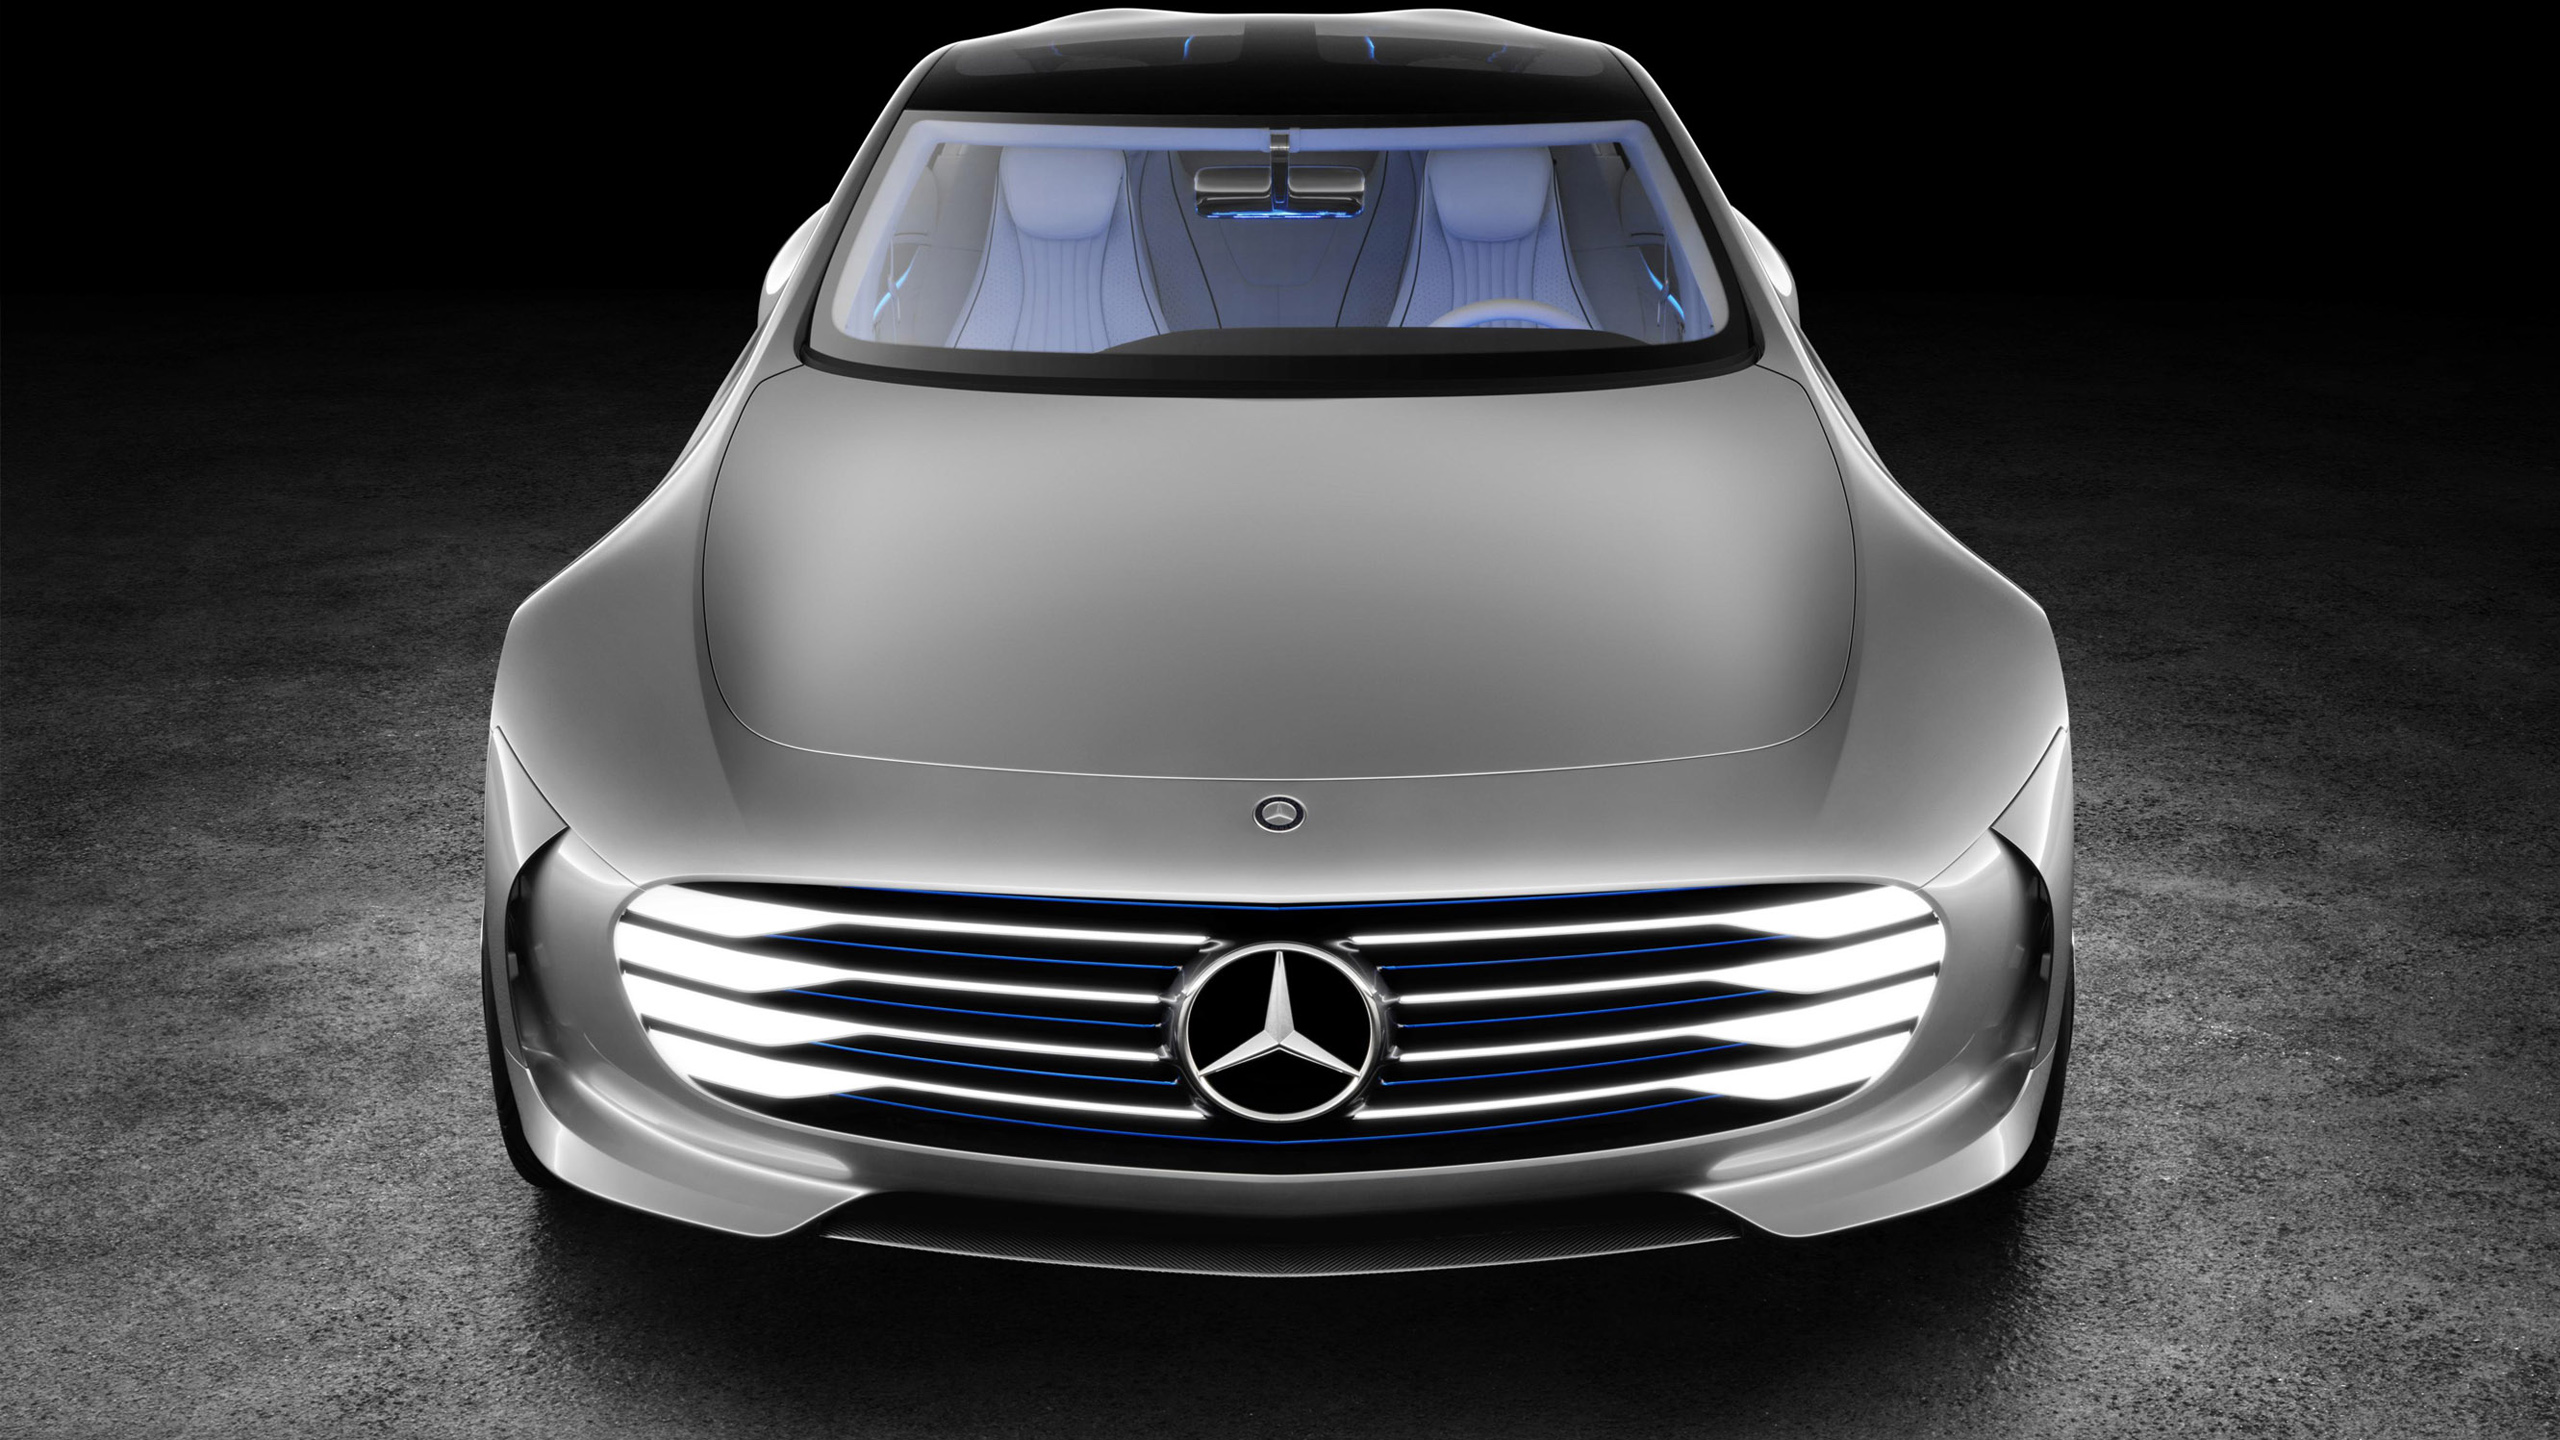 2016 mercedes benz concept iaa wallpaper hd car. Black Bedroom Furniture Sets. Home Design Ideas